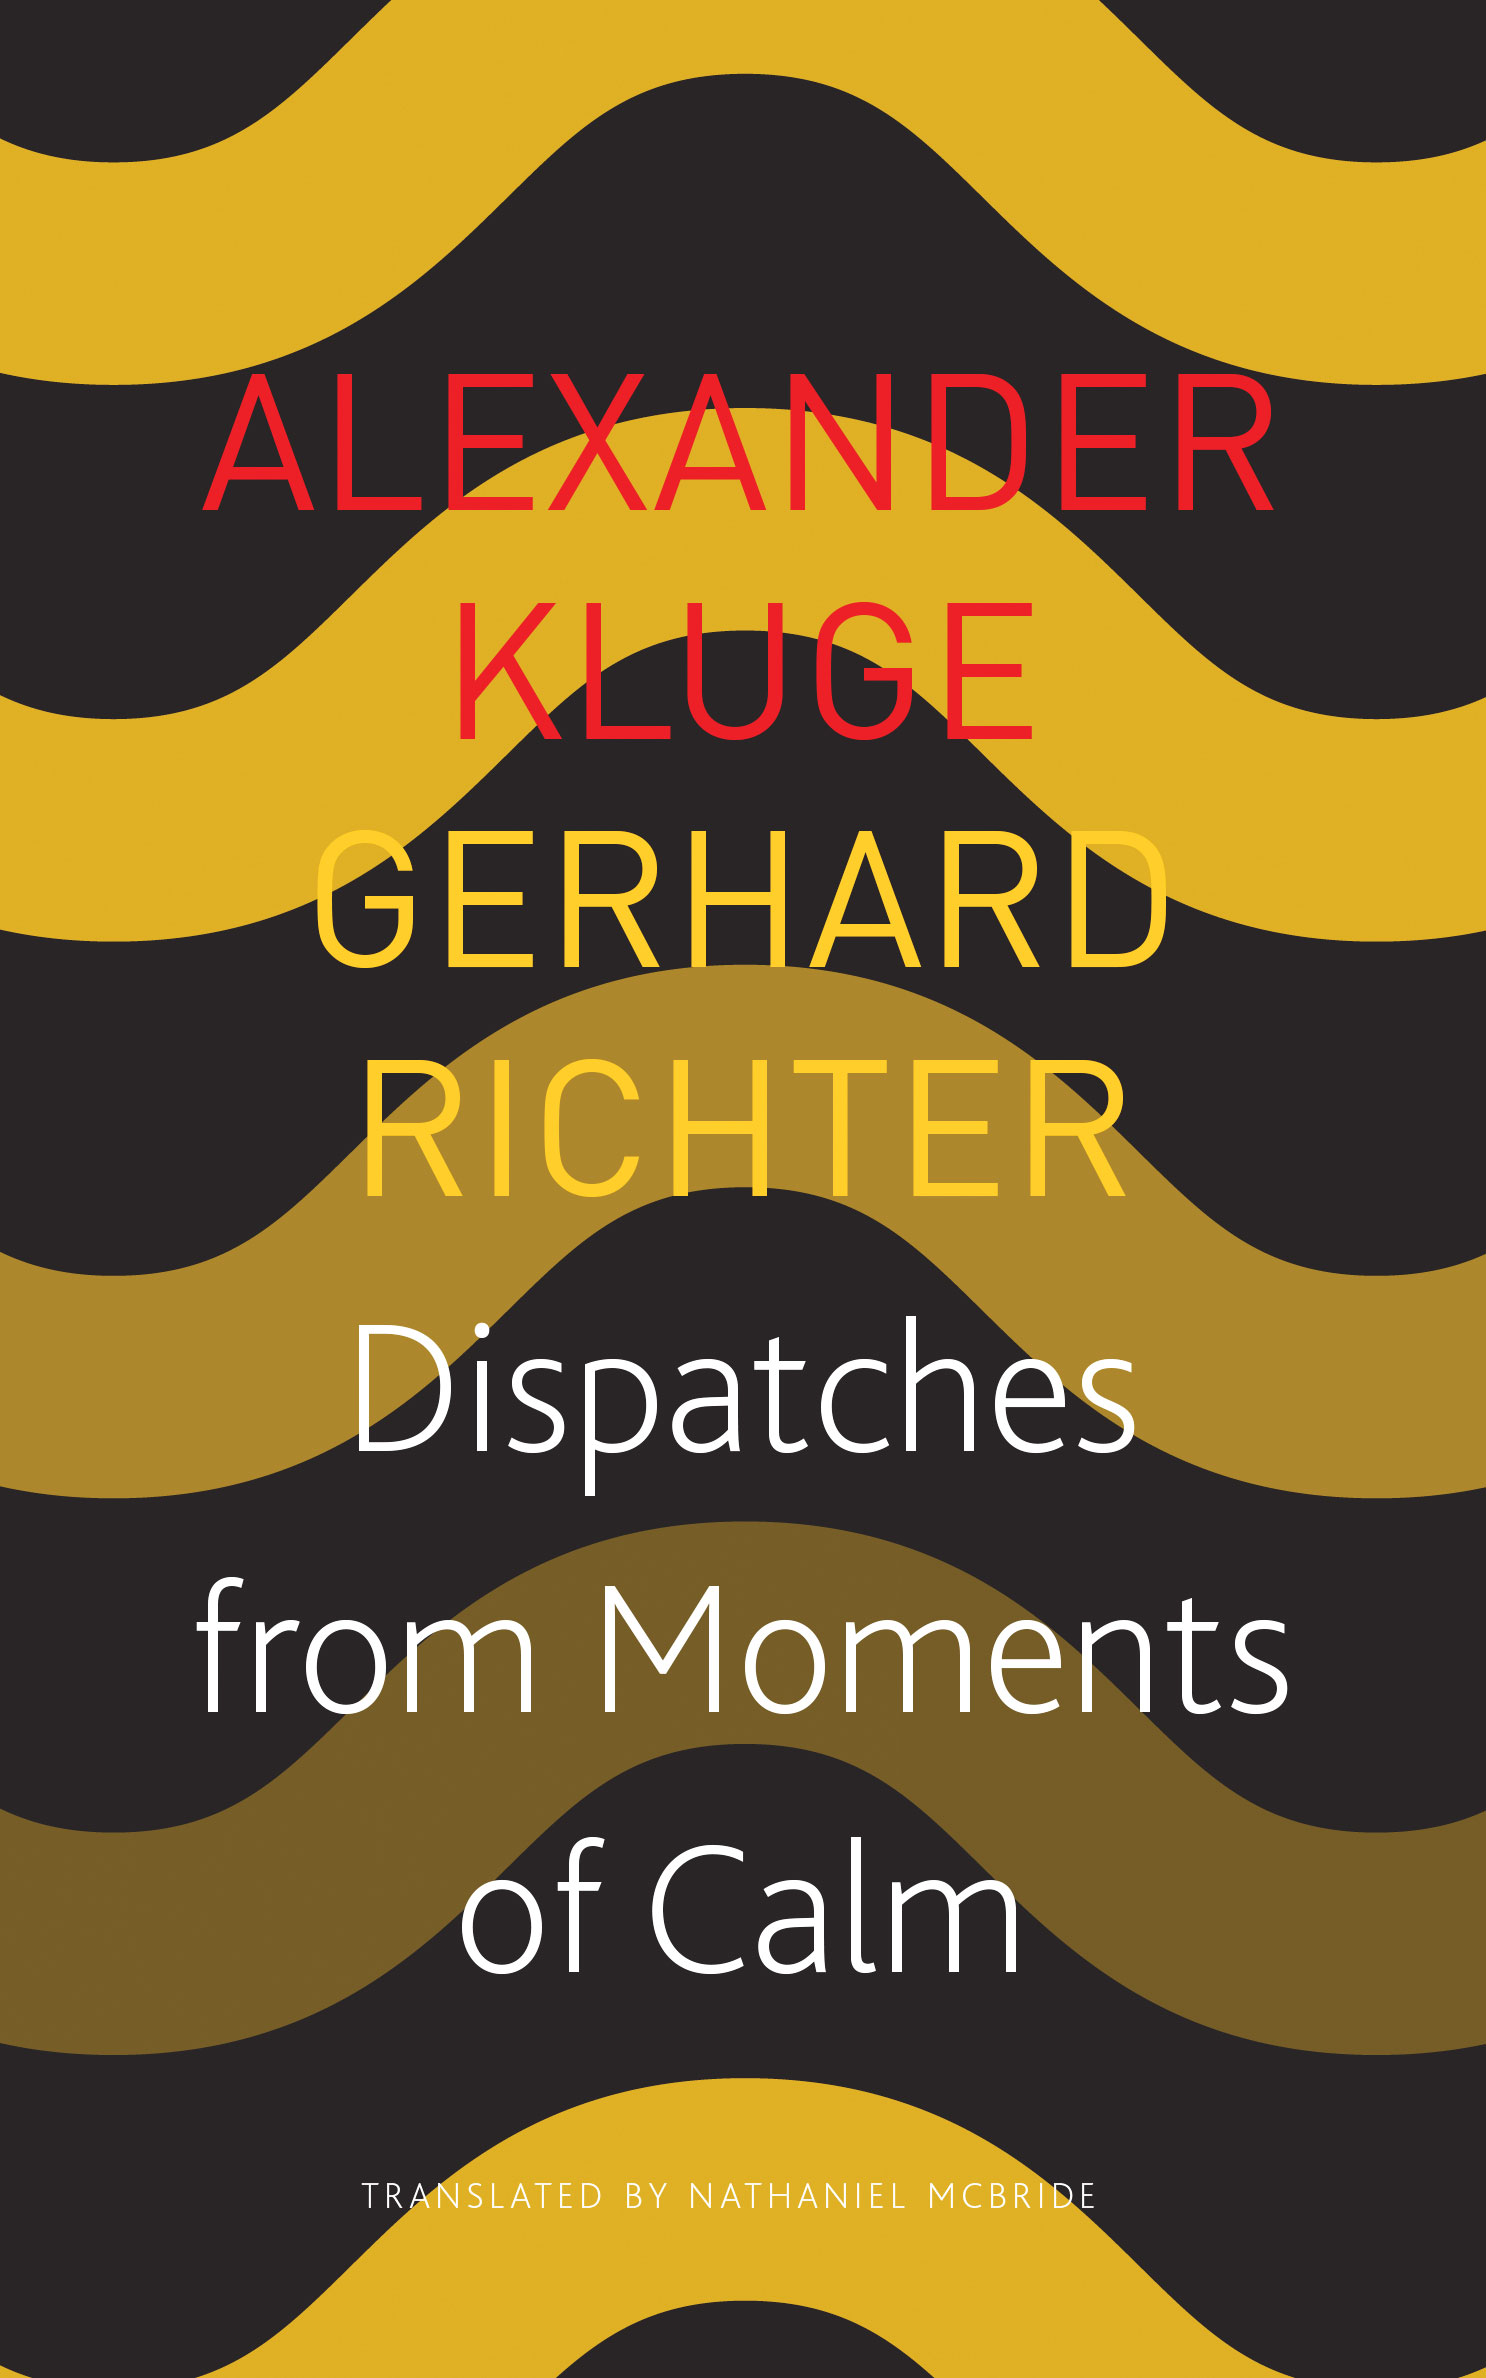 Dispatches from Moments of Calm by Alexander Kluge and Gerhard Richter |  SEAGULL BOOKS